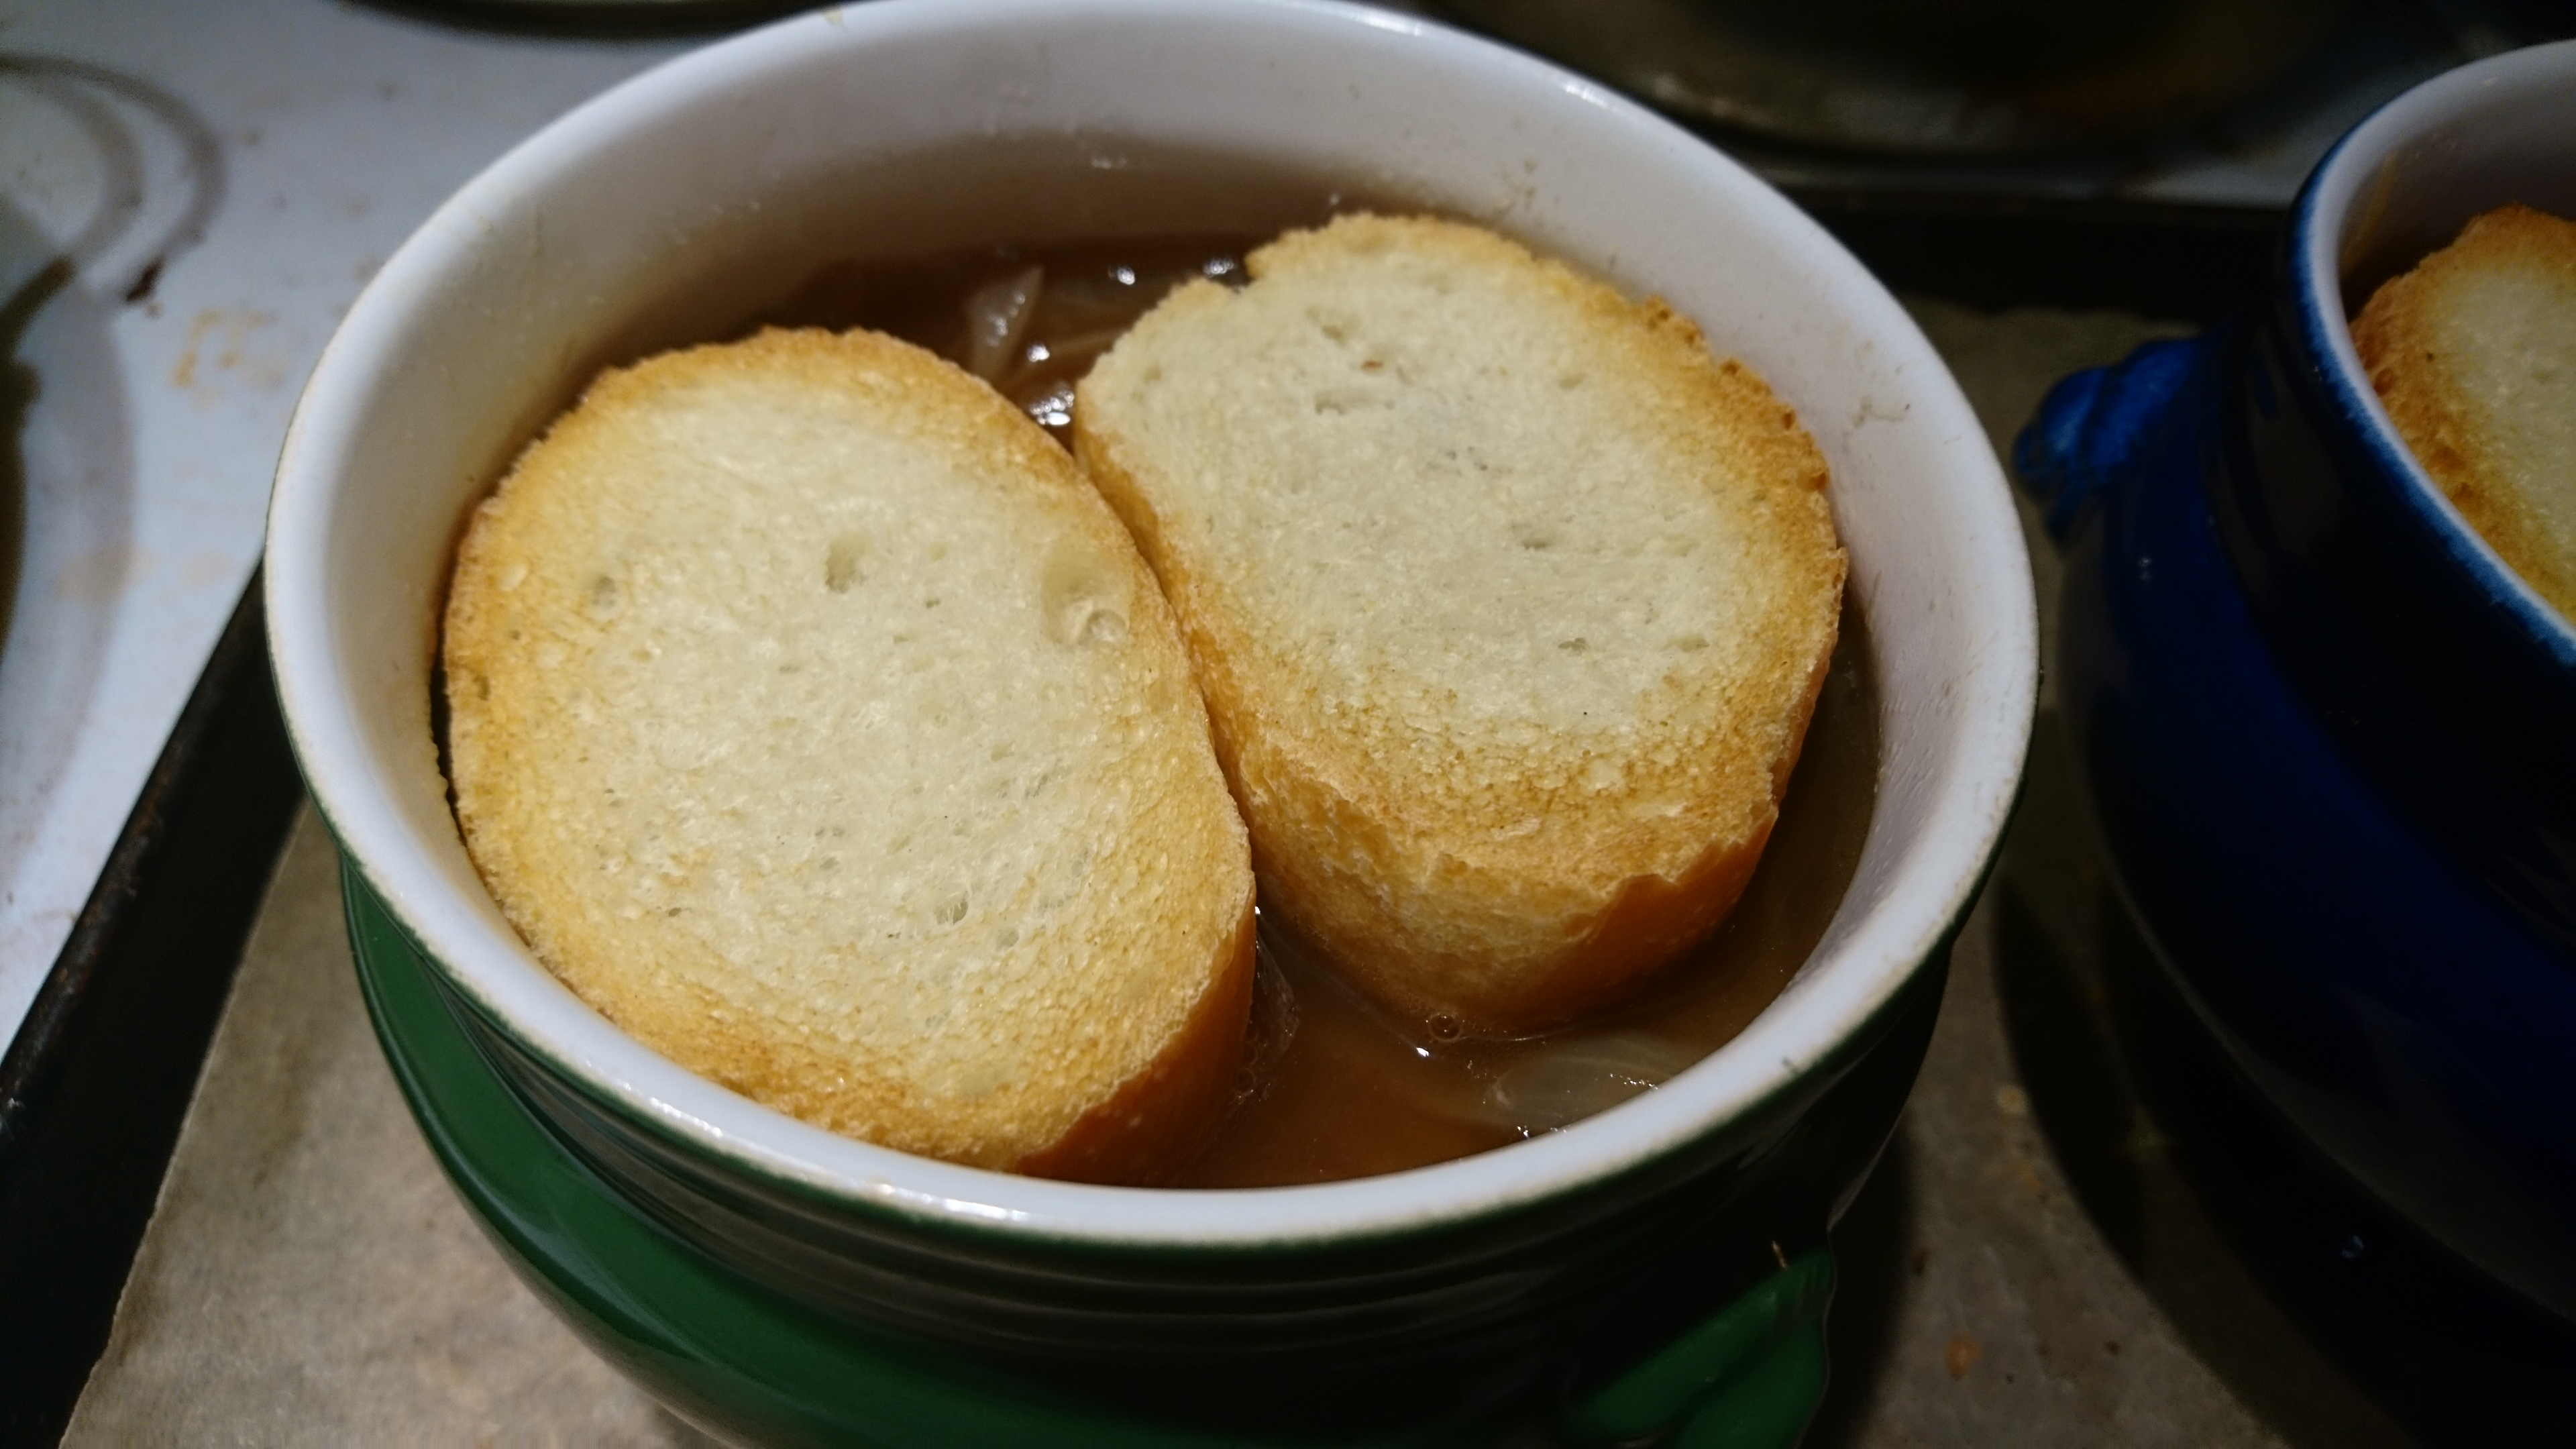 bowls with toasts on top